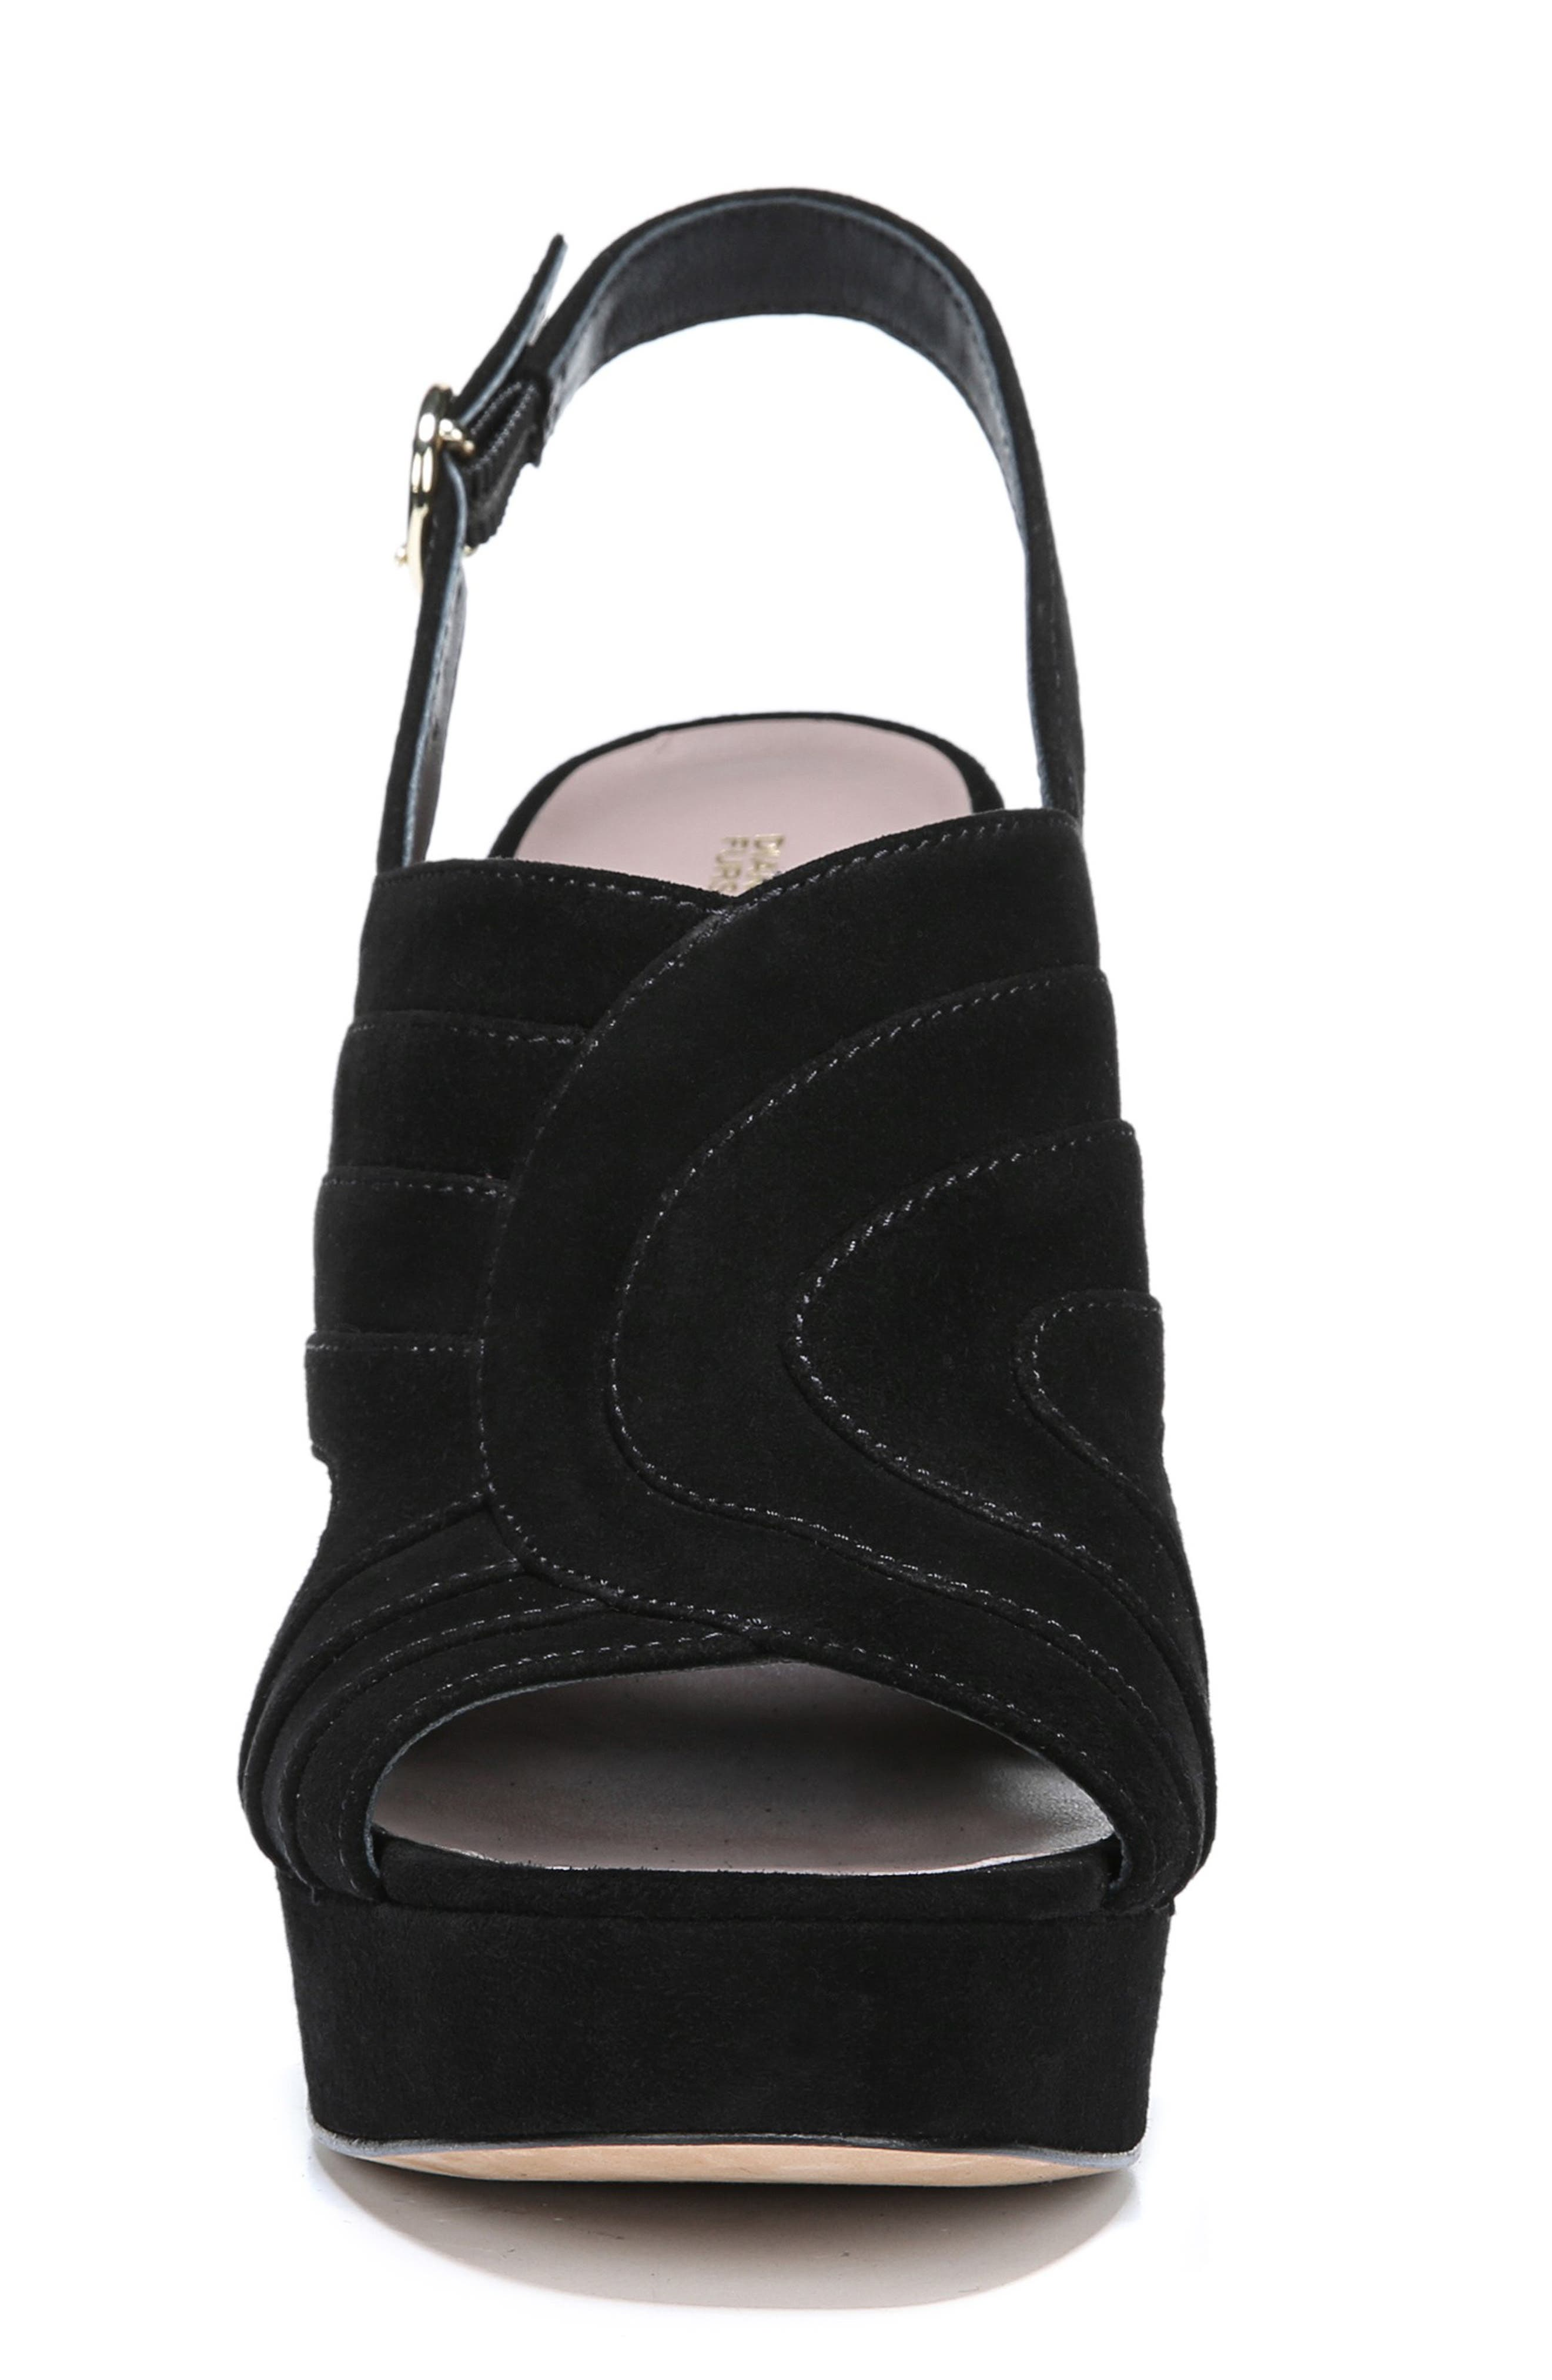 Tabby Platform Sandal,                             Alternate thumbnail 4, color,                             BLACK